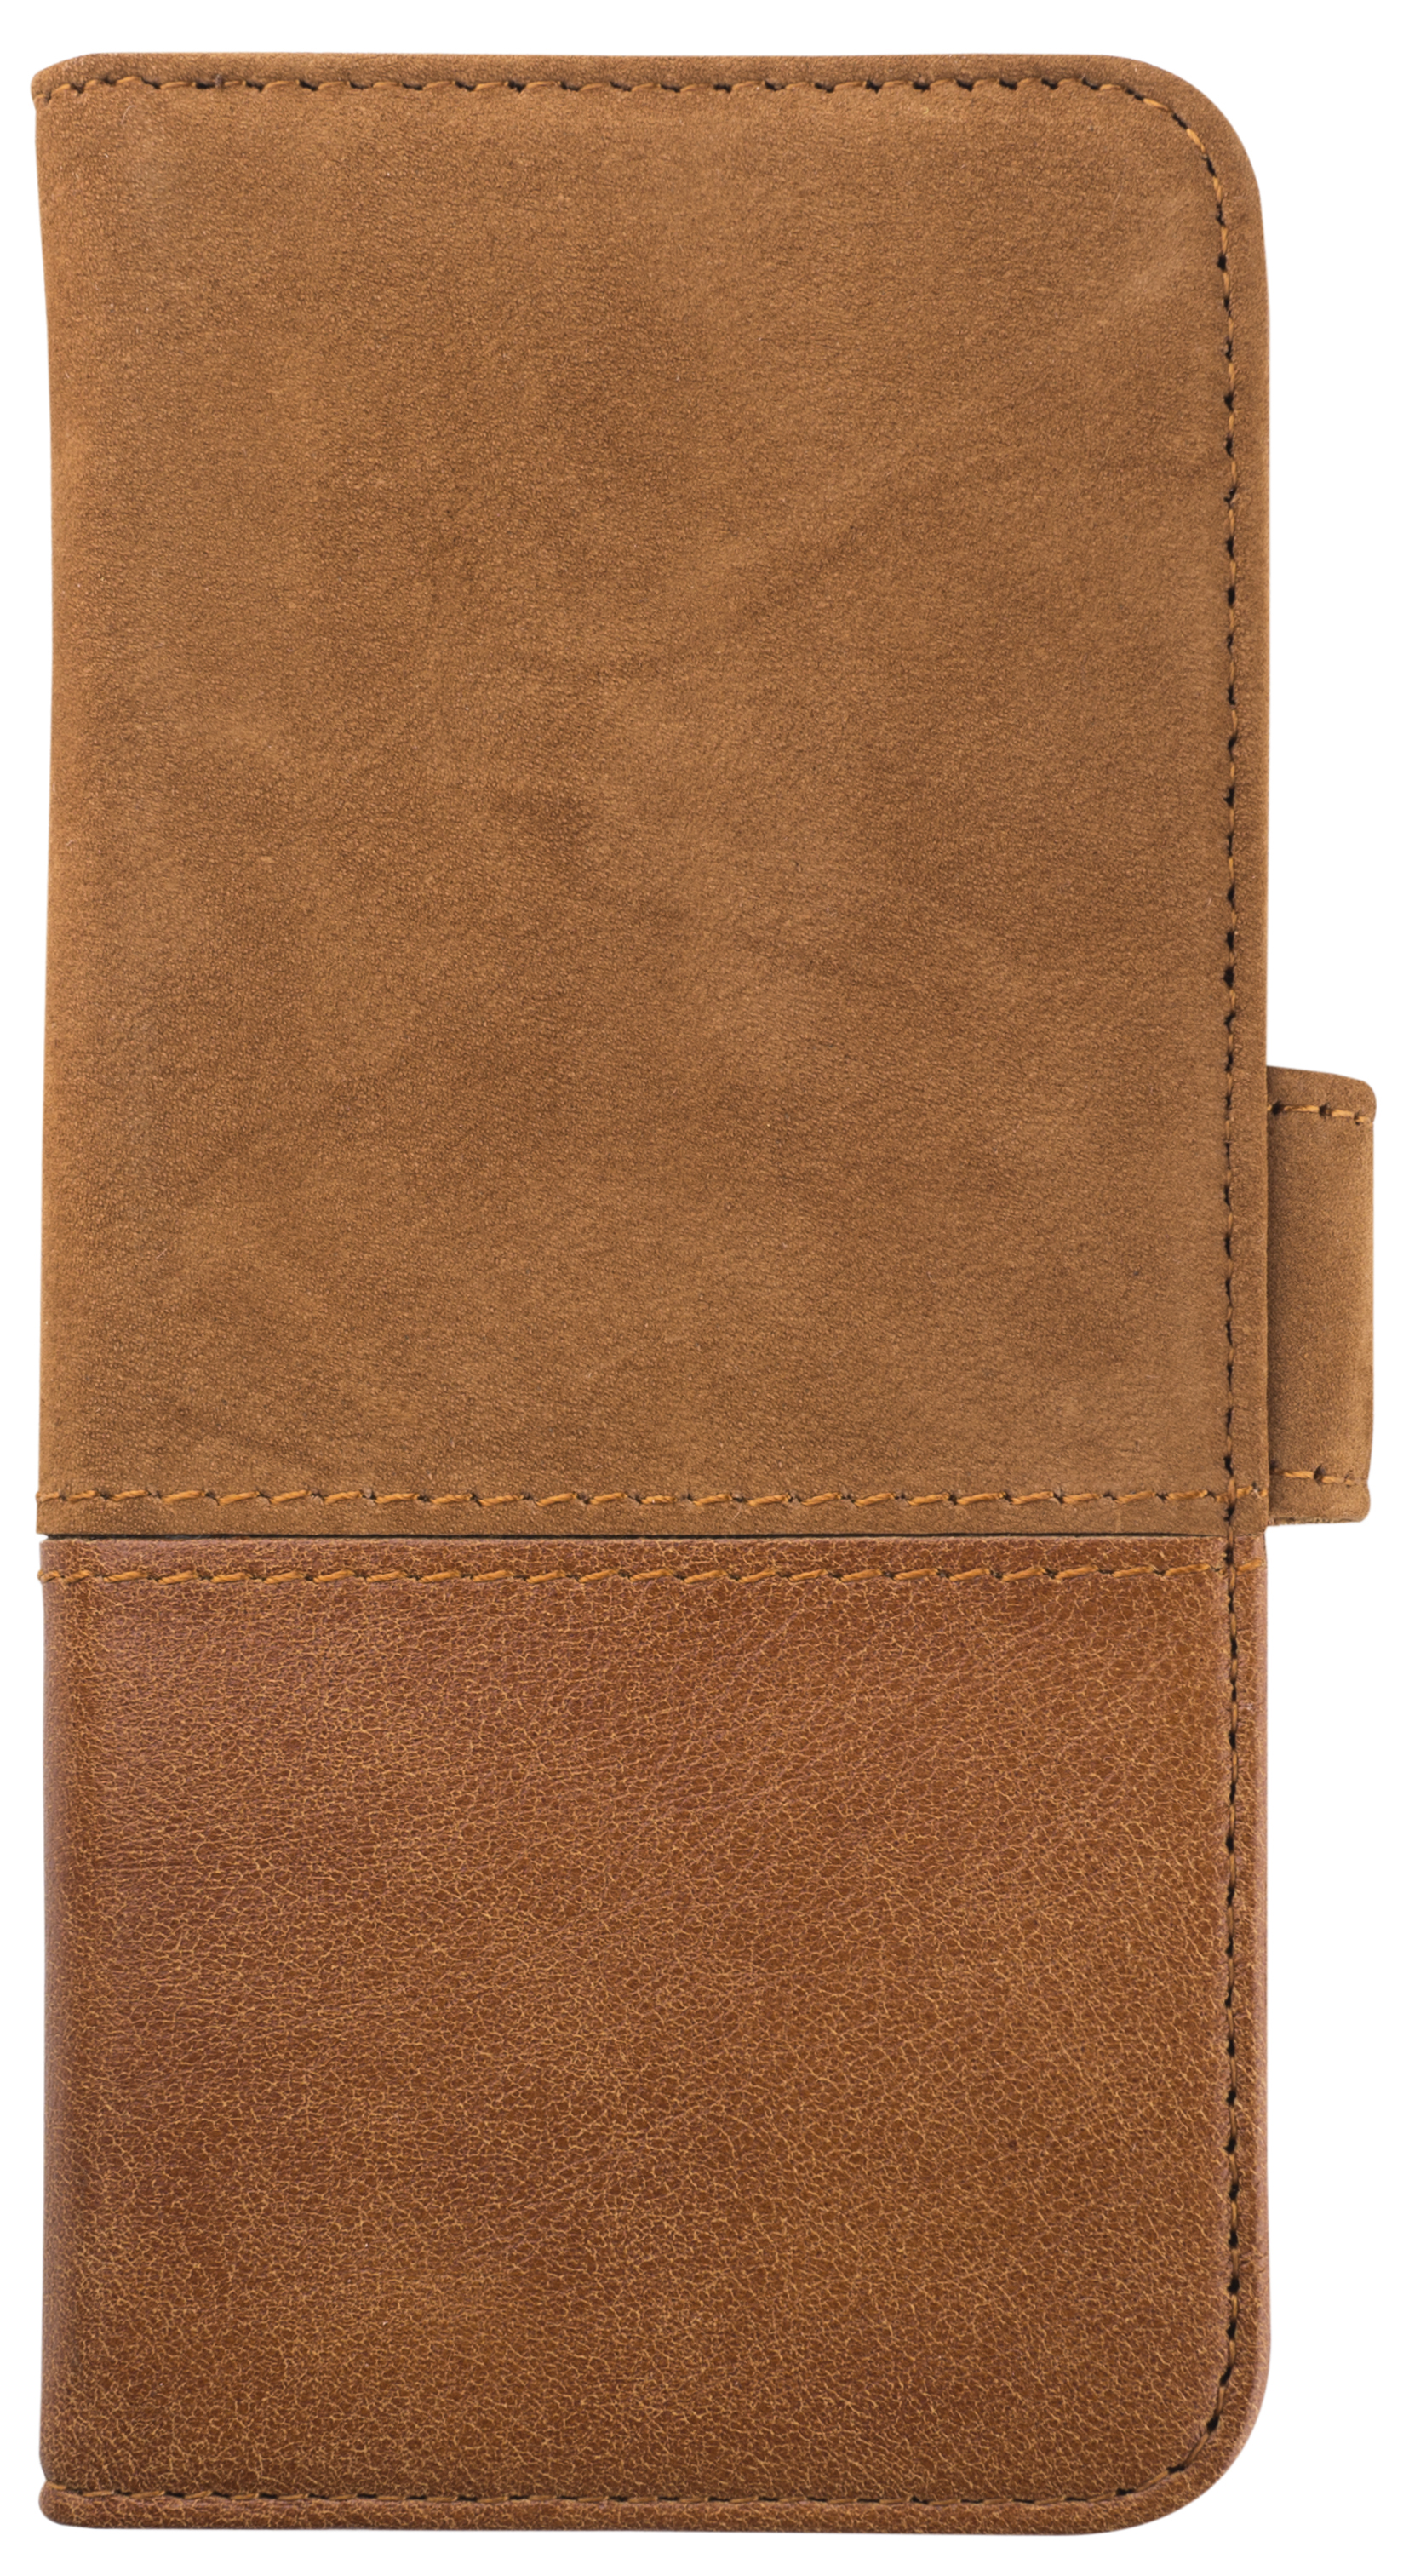 HOLDIT Wallet magnet pouzdro flip Samsung Galaxy S8+ brown leather/suede